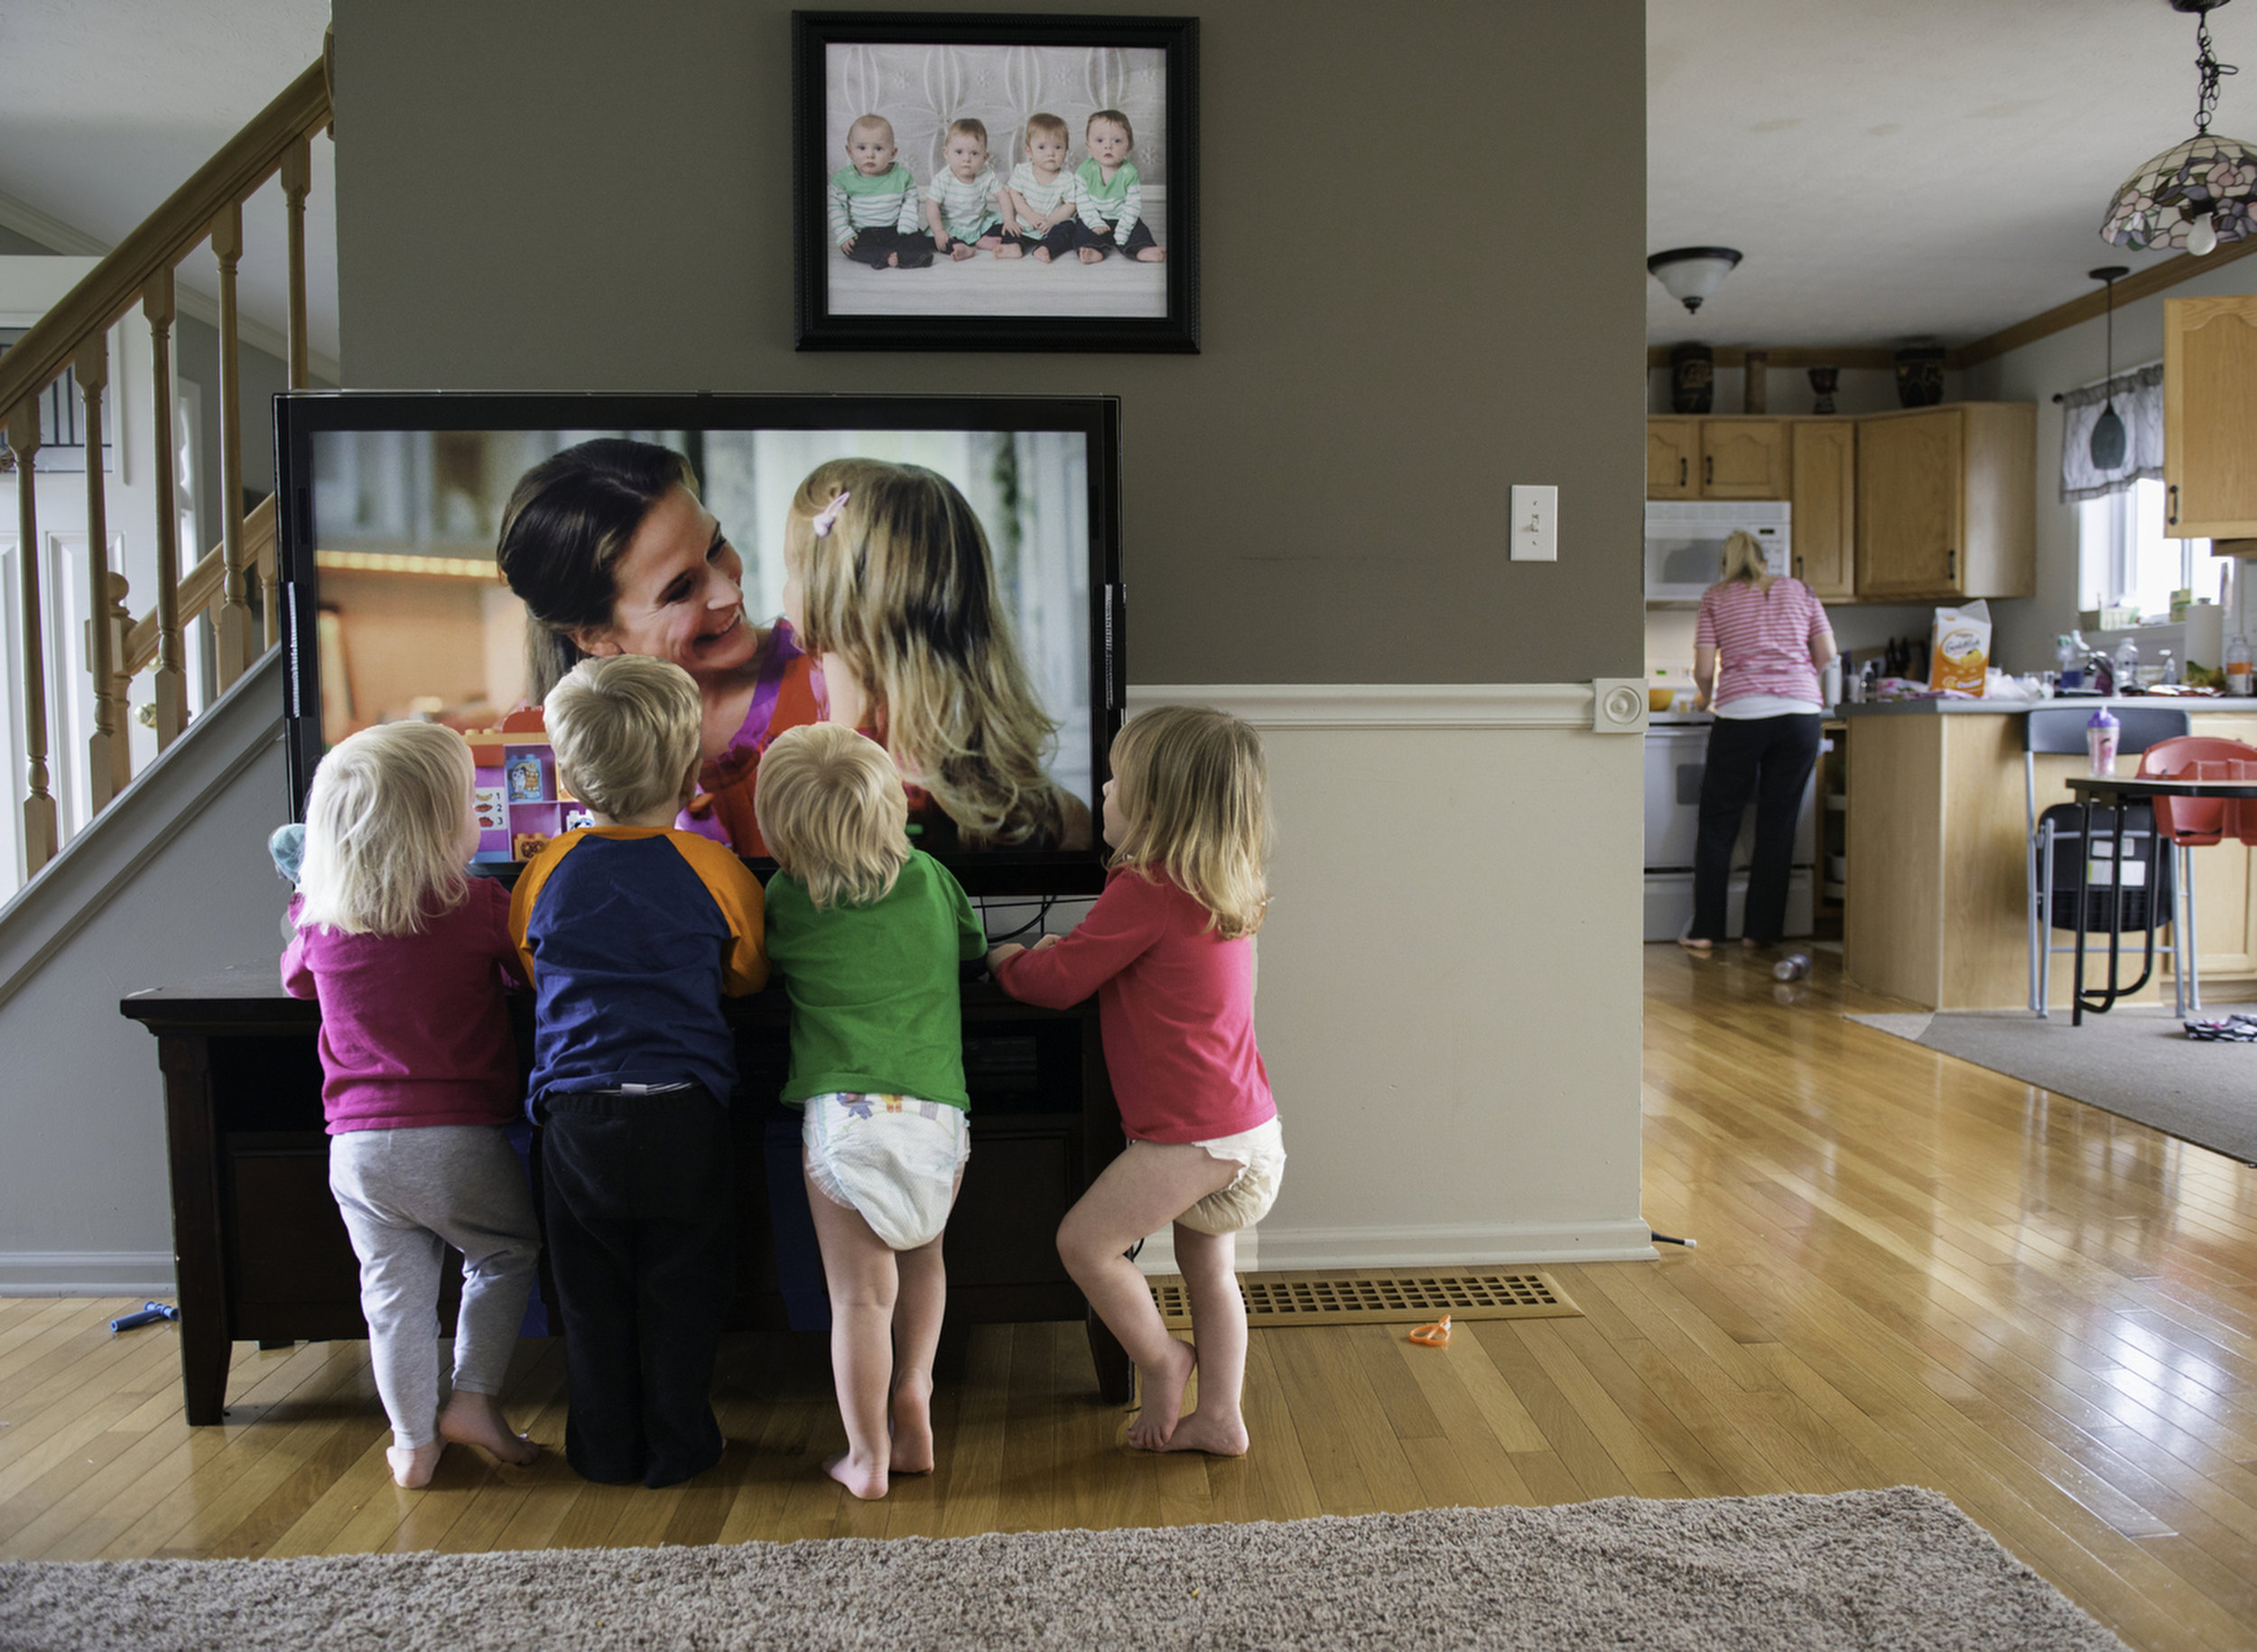 The Larson quadruplets (from left to right) Ashlyn, Brody, Cooper, and Kylie all watch television as their mother Courtney Larson prepares a snack for them in the kitchen on Nov. 16, 2014. Courtney often puts on the television to distract the children while she prepares food or does chores around the house.